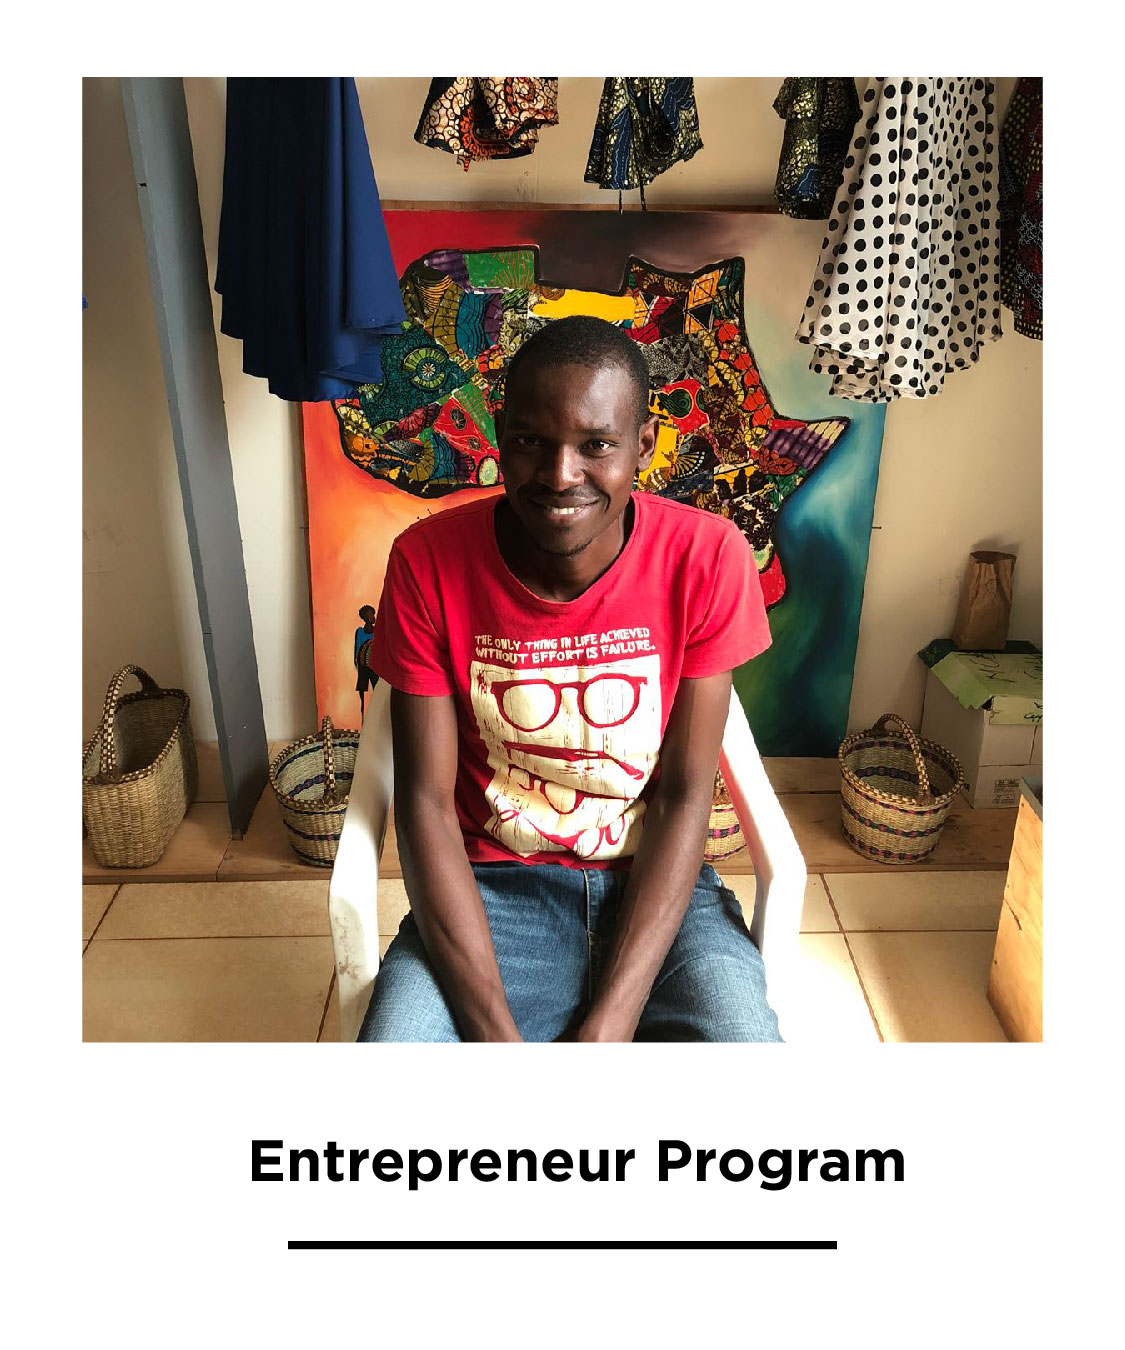 Education is proven to support long-term change, we are supporting our team member Chris in finishing his education this year to pursue his dream of business management.